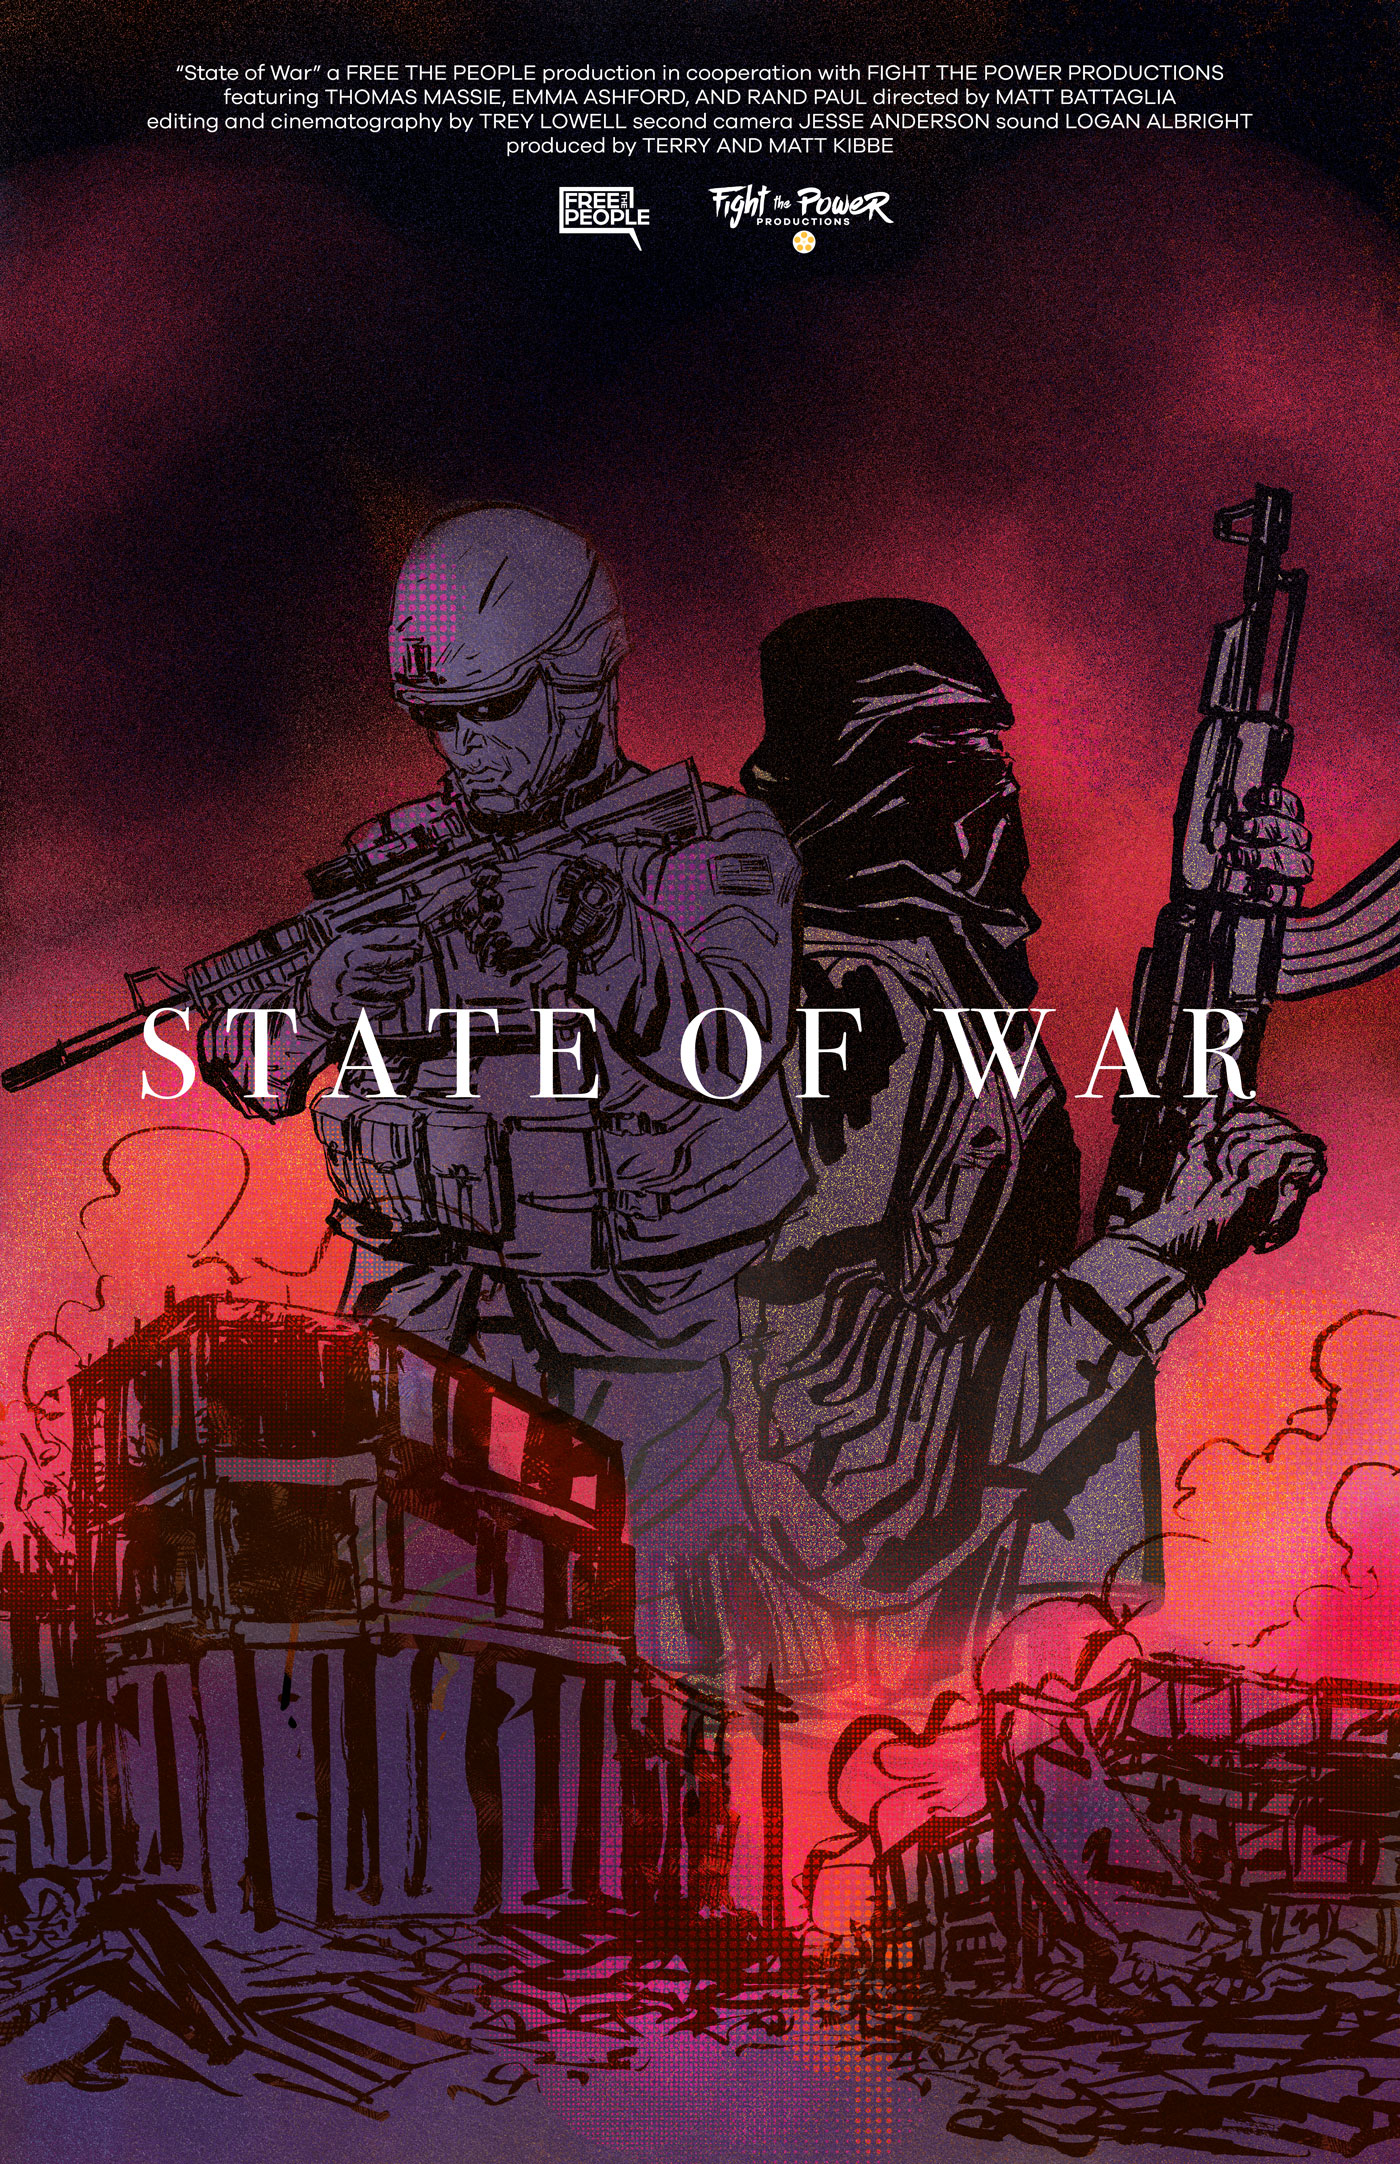 state_of_war_poster_web.jpg